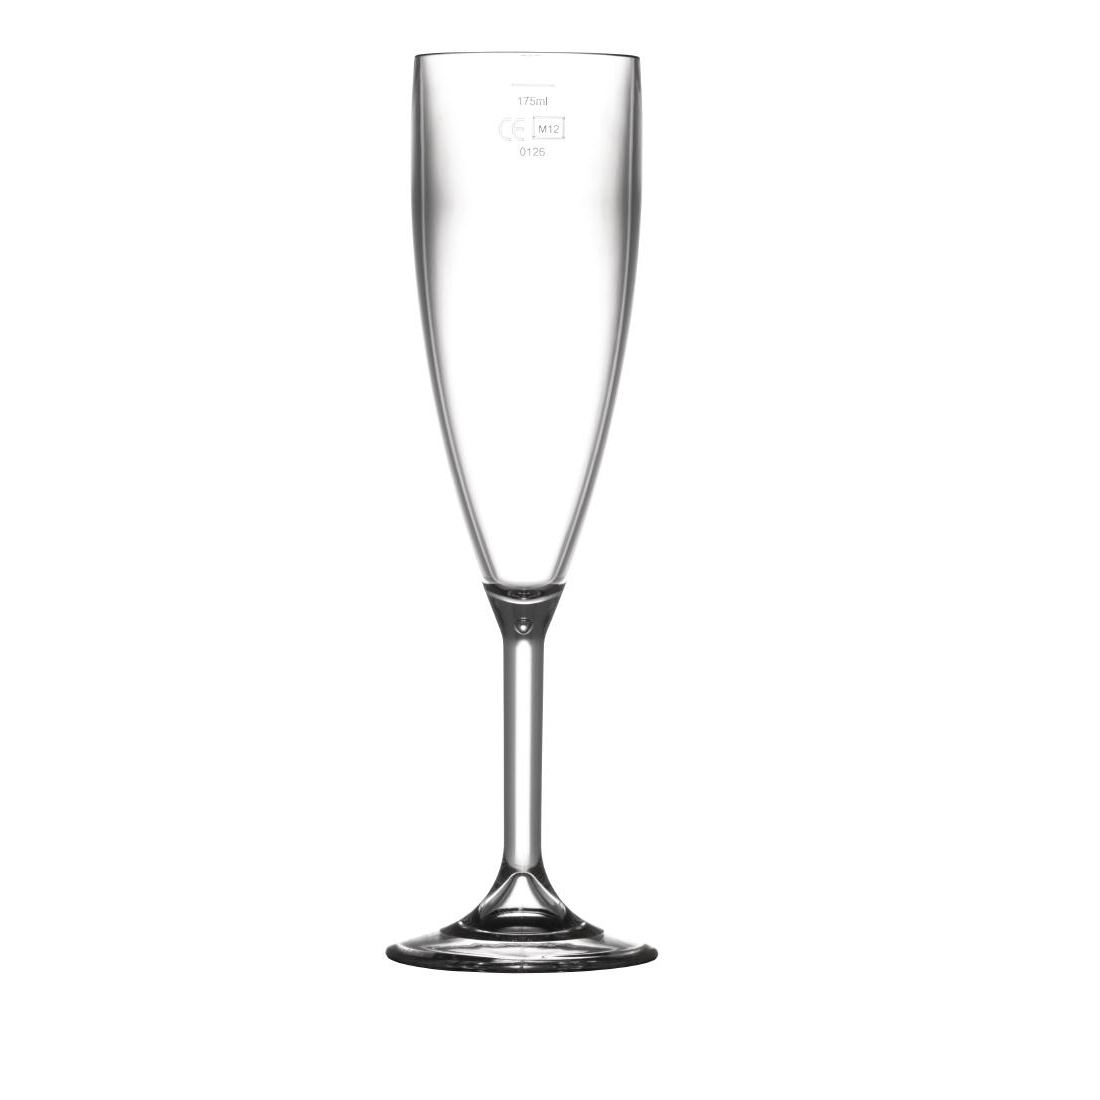 BBP Polycarbonate Champagne Flutes 200ml CE Marked at 175ml